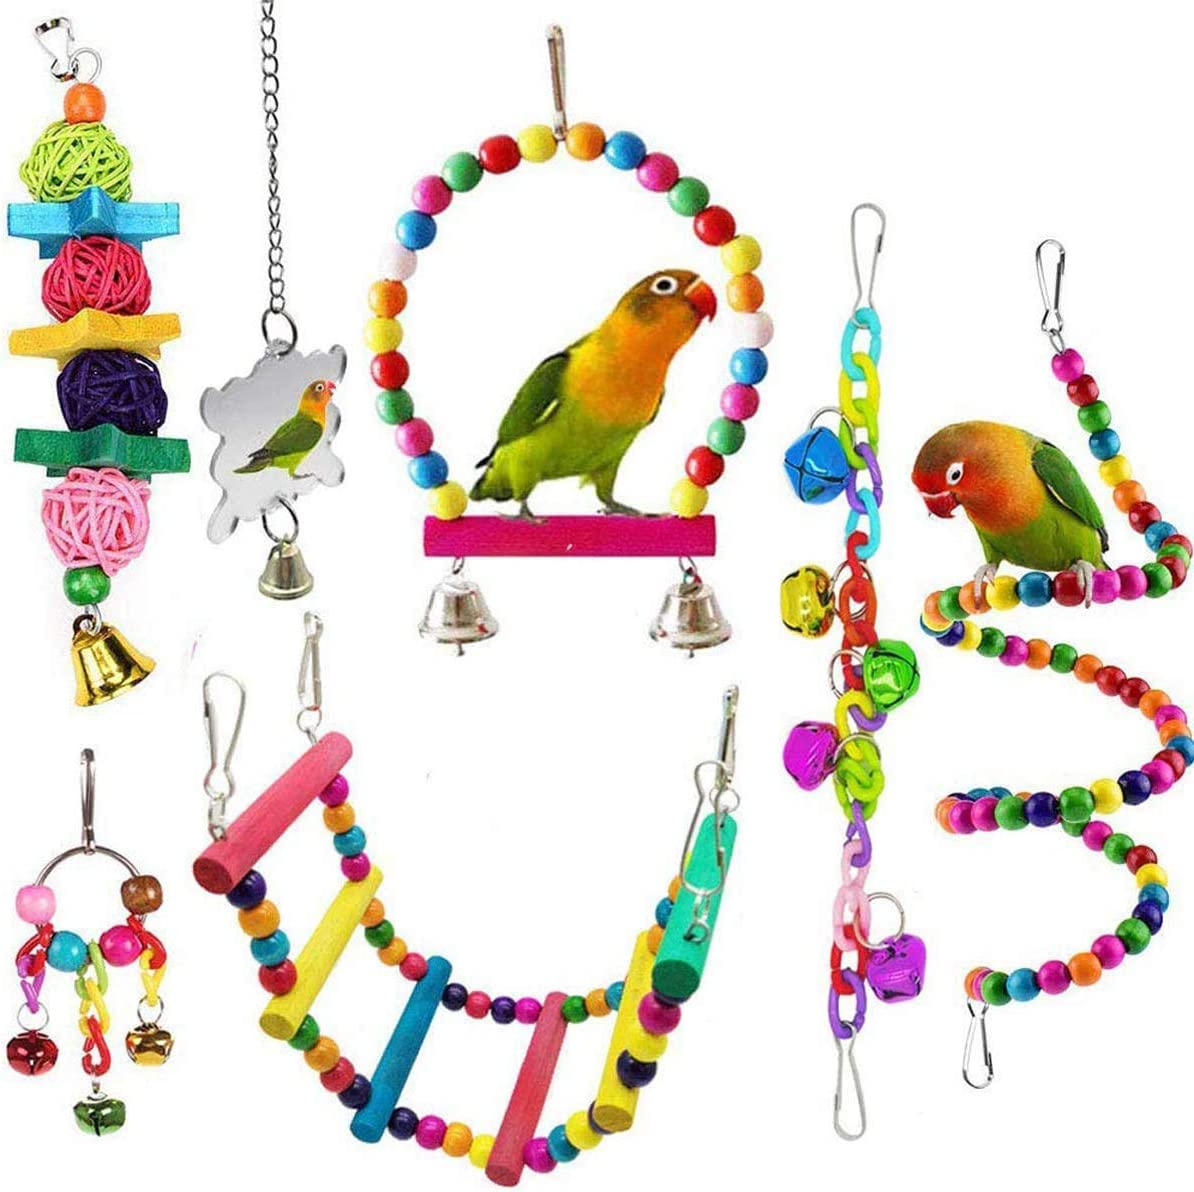 Mrli Pet 5 Pack Bird Swing Toys with Colorful Wood Beads Bells and Wooden Hammock Hanging Perch for Budgie Lovebirds Conures Small Parakeet Cages Decorative Accessories